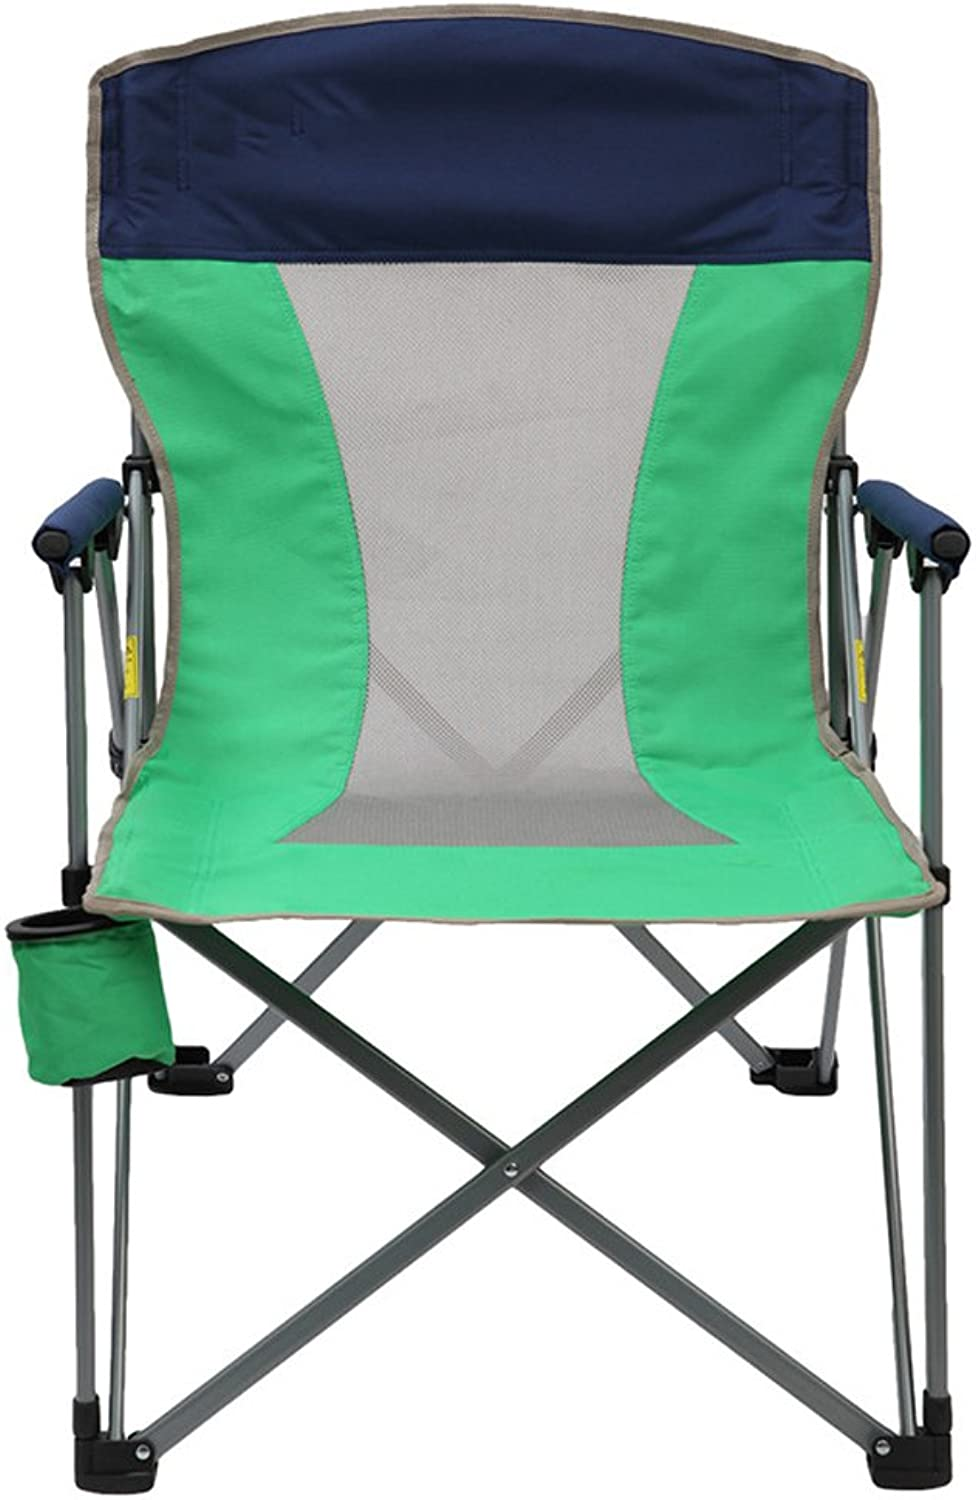 RFJJAL Folding Steel Frame Camping Chair Padded with Armrest Mesh Cup Holder Lightweight Portable Stable for Camping, Picnics, Beach, Fishing (color   Green)